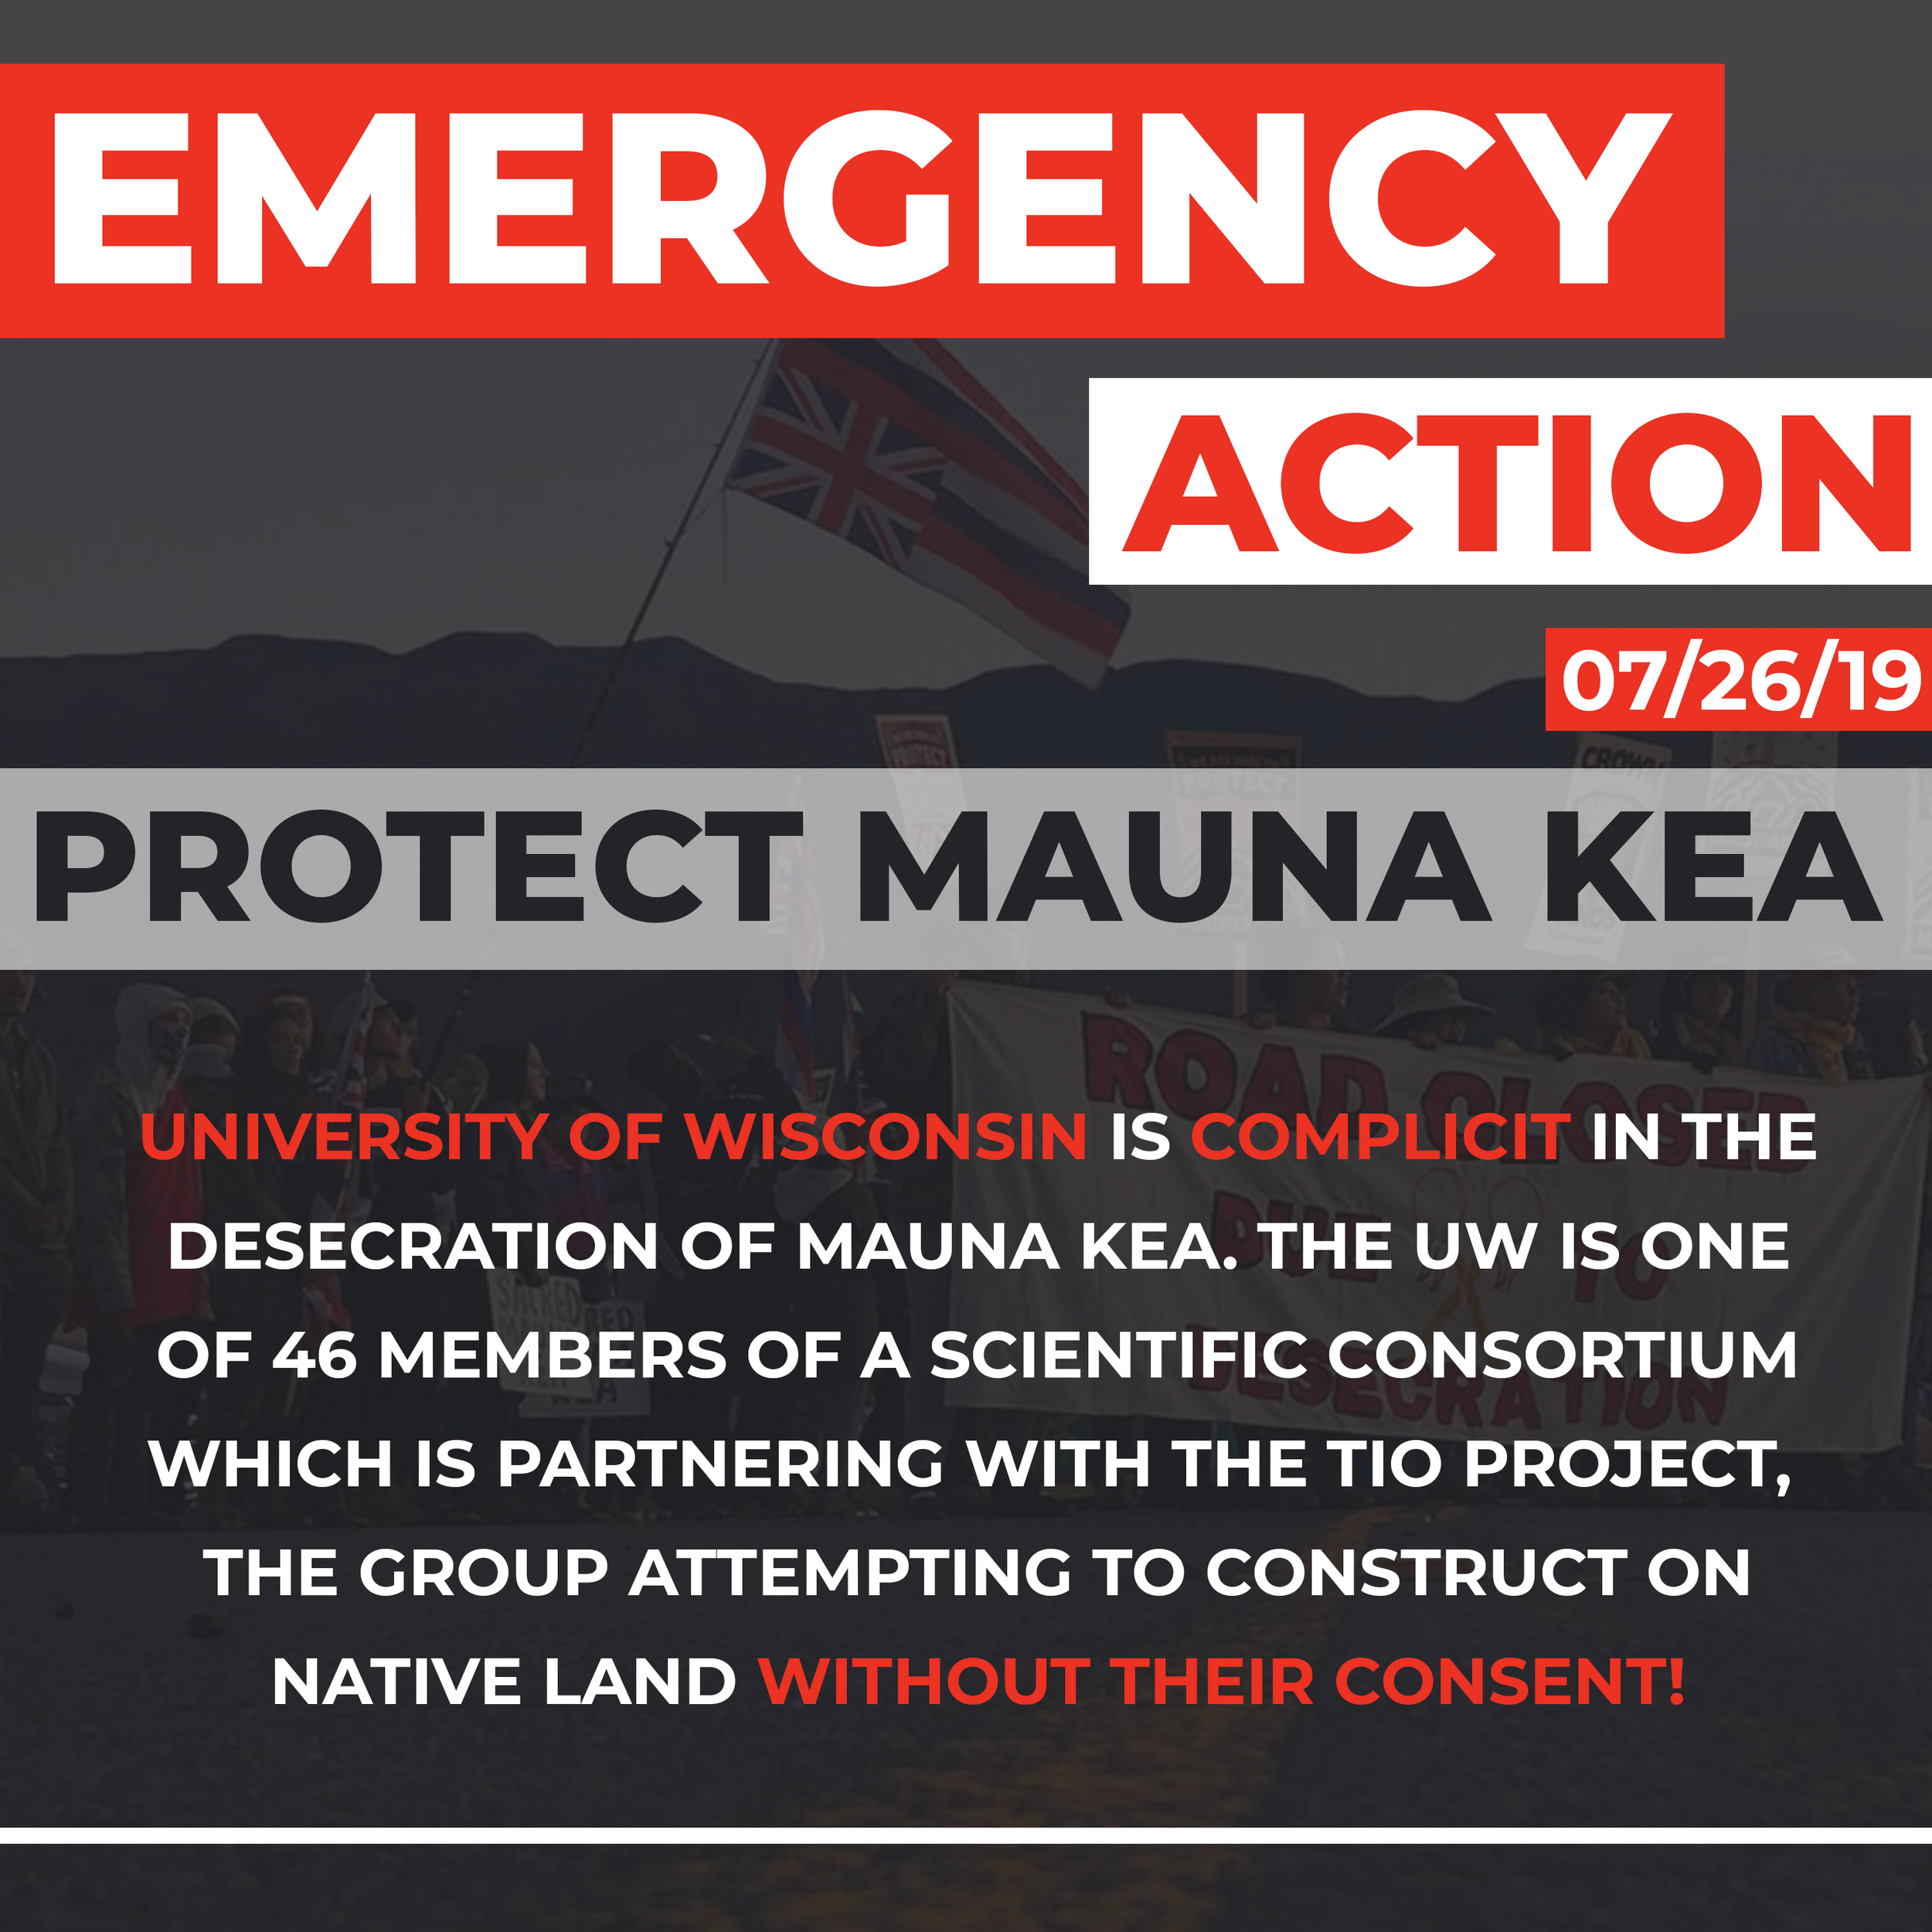 protestmaunakea.png